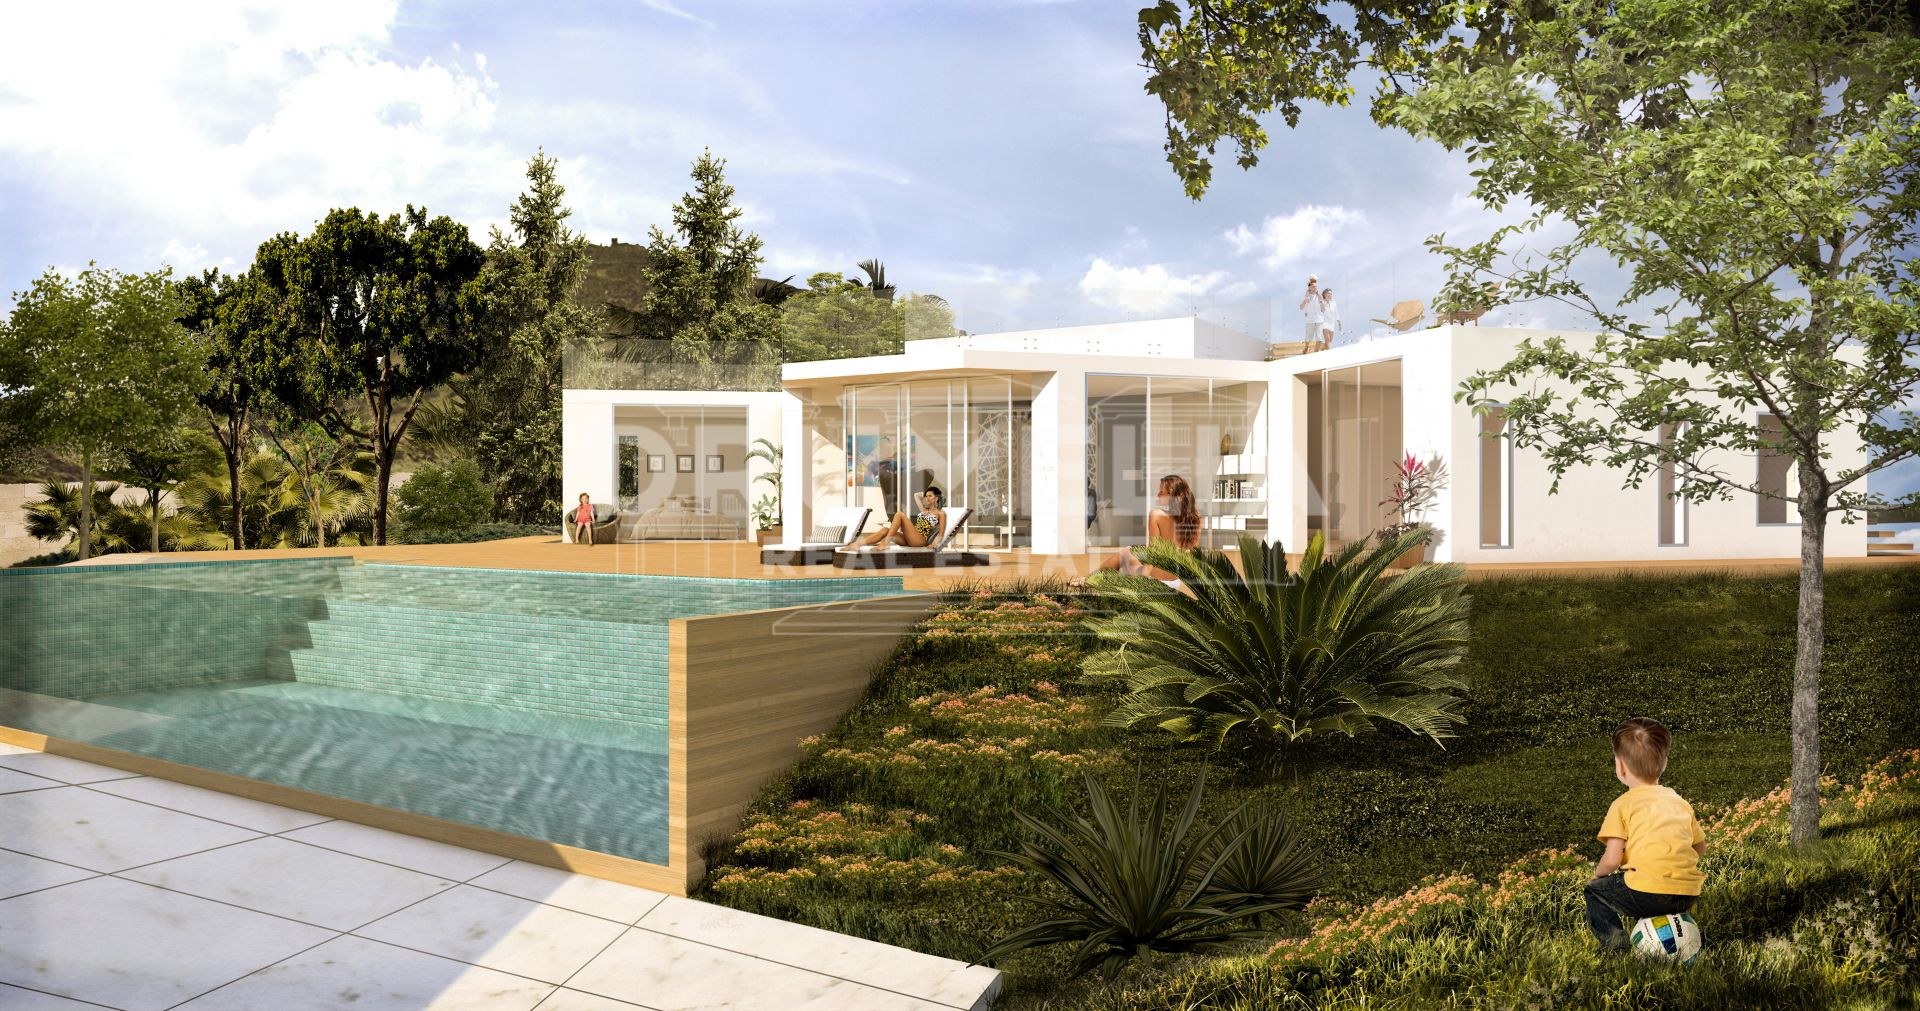 Marbella Golden Mile,  Attractive Villa with Amazing Potential, Rio Verde, Marbella Golden Mile (Marbella)